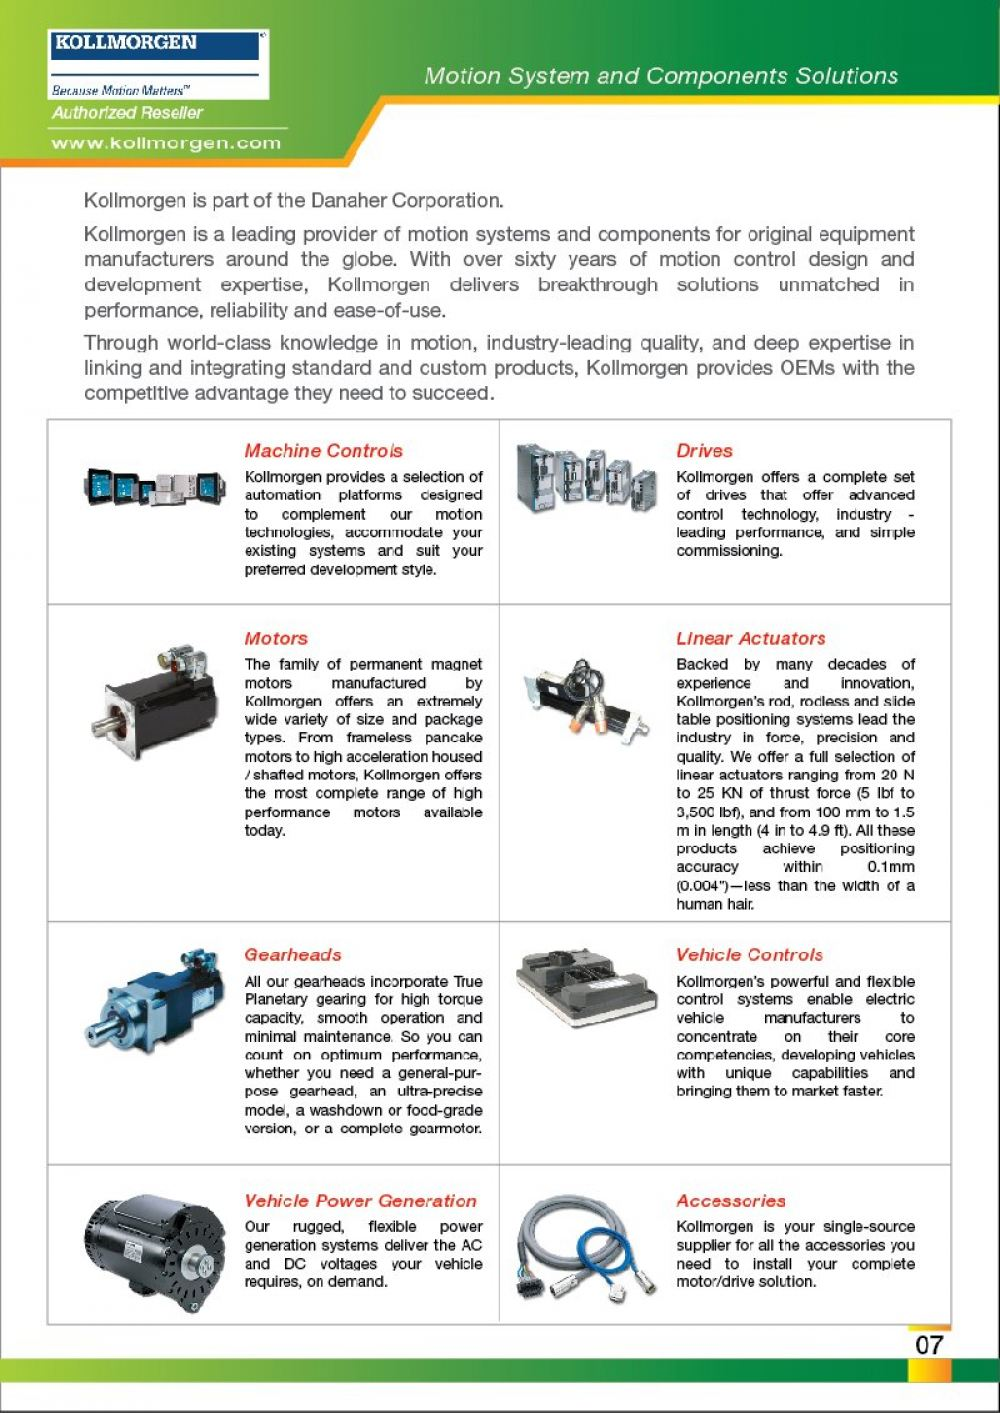 FEG is Authorized Reseller KOLLMORGEN Motors Drives Actuators